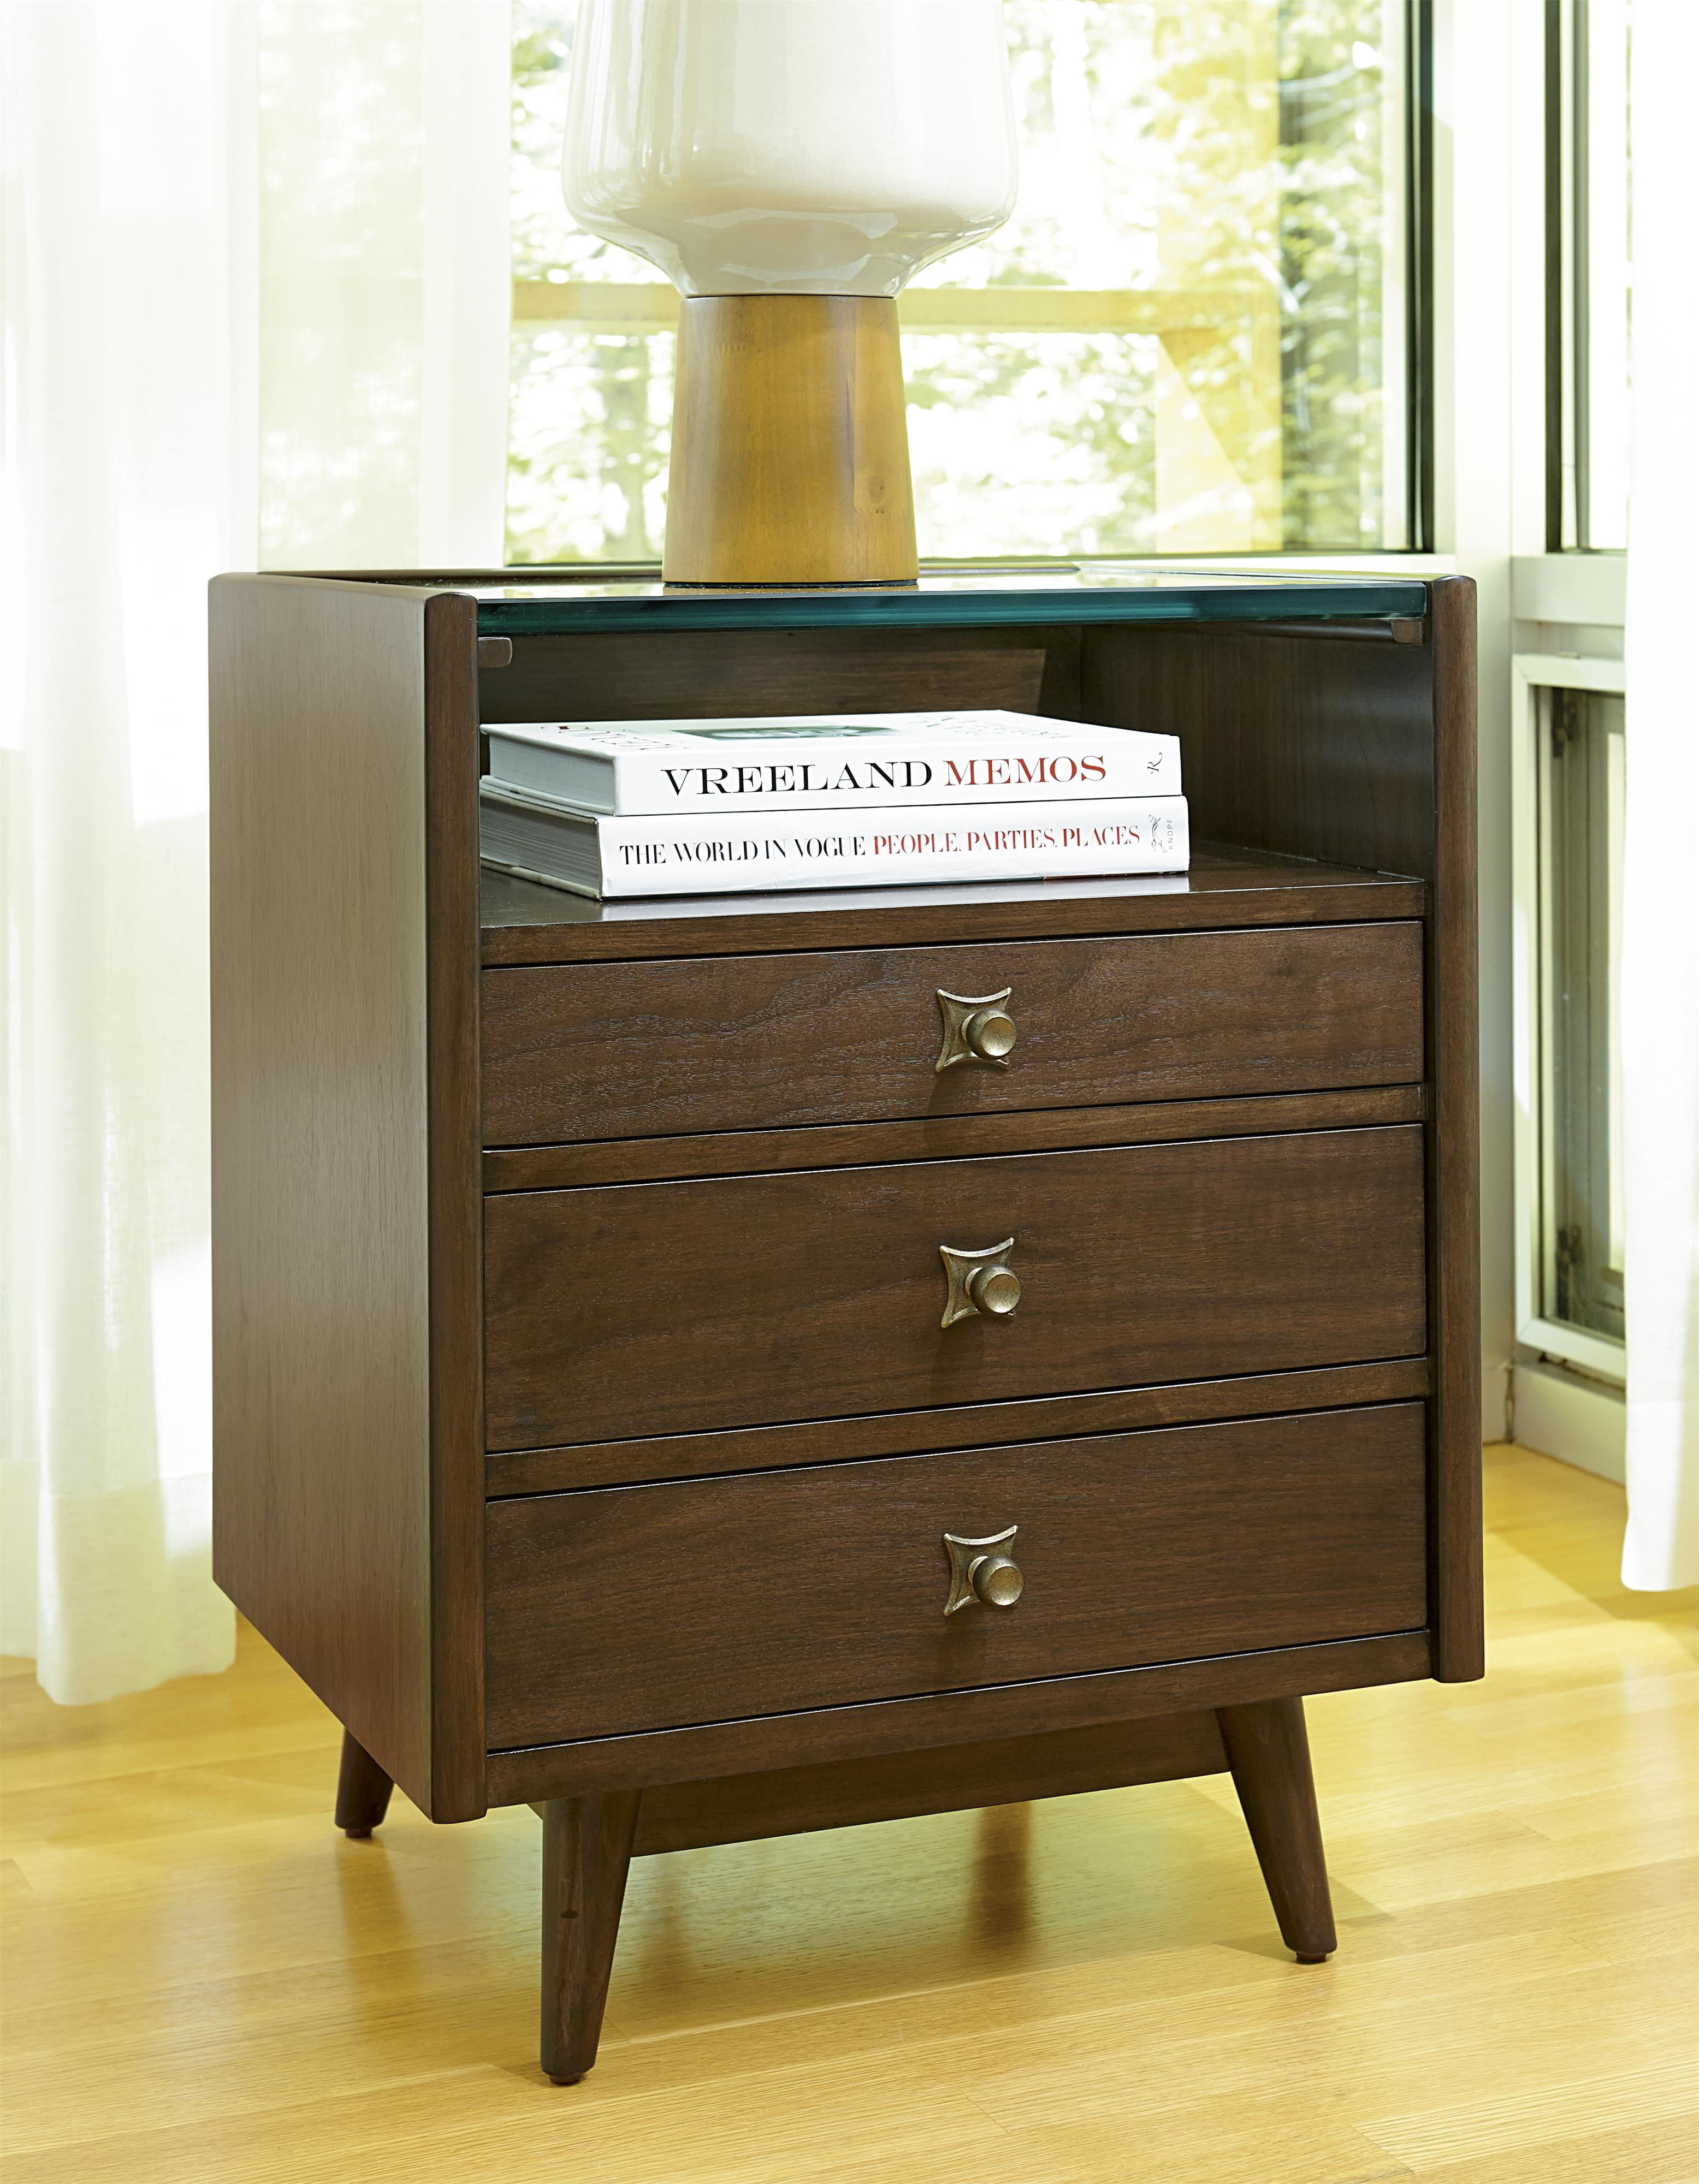 midcentury modern silver lake nightstand with glass top and shelf  - midcentury modern silver lake nightstand with glass top and shelf withwire management